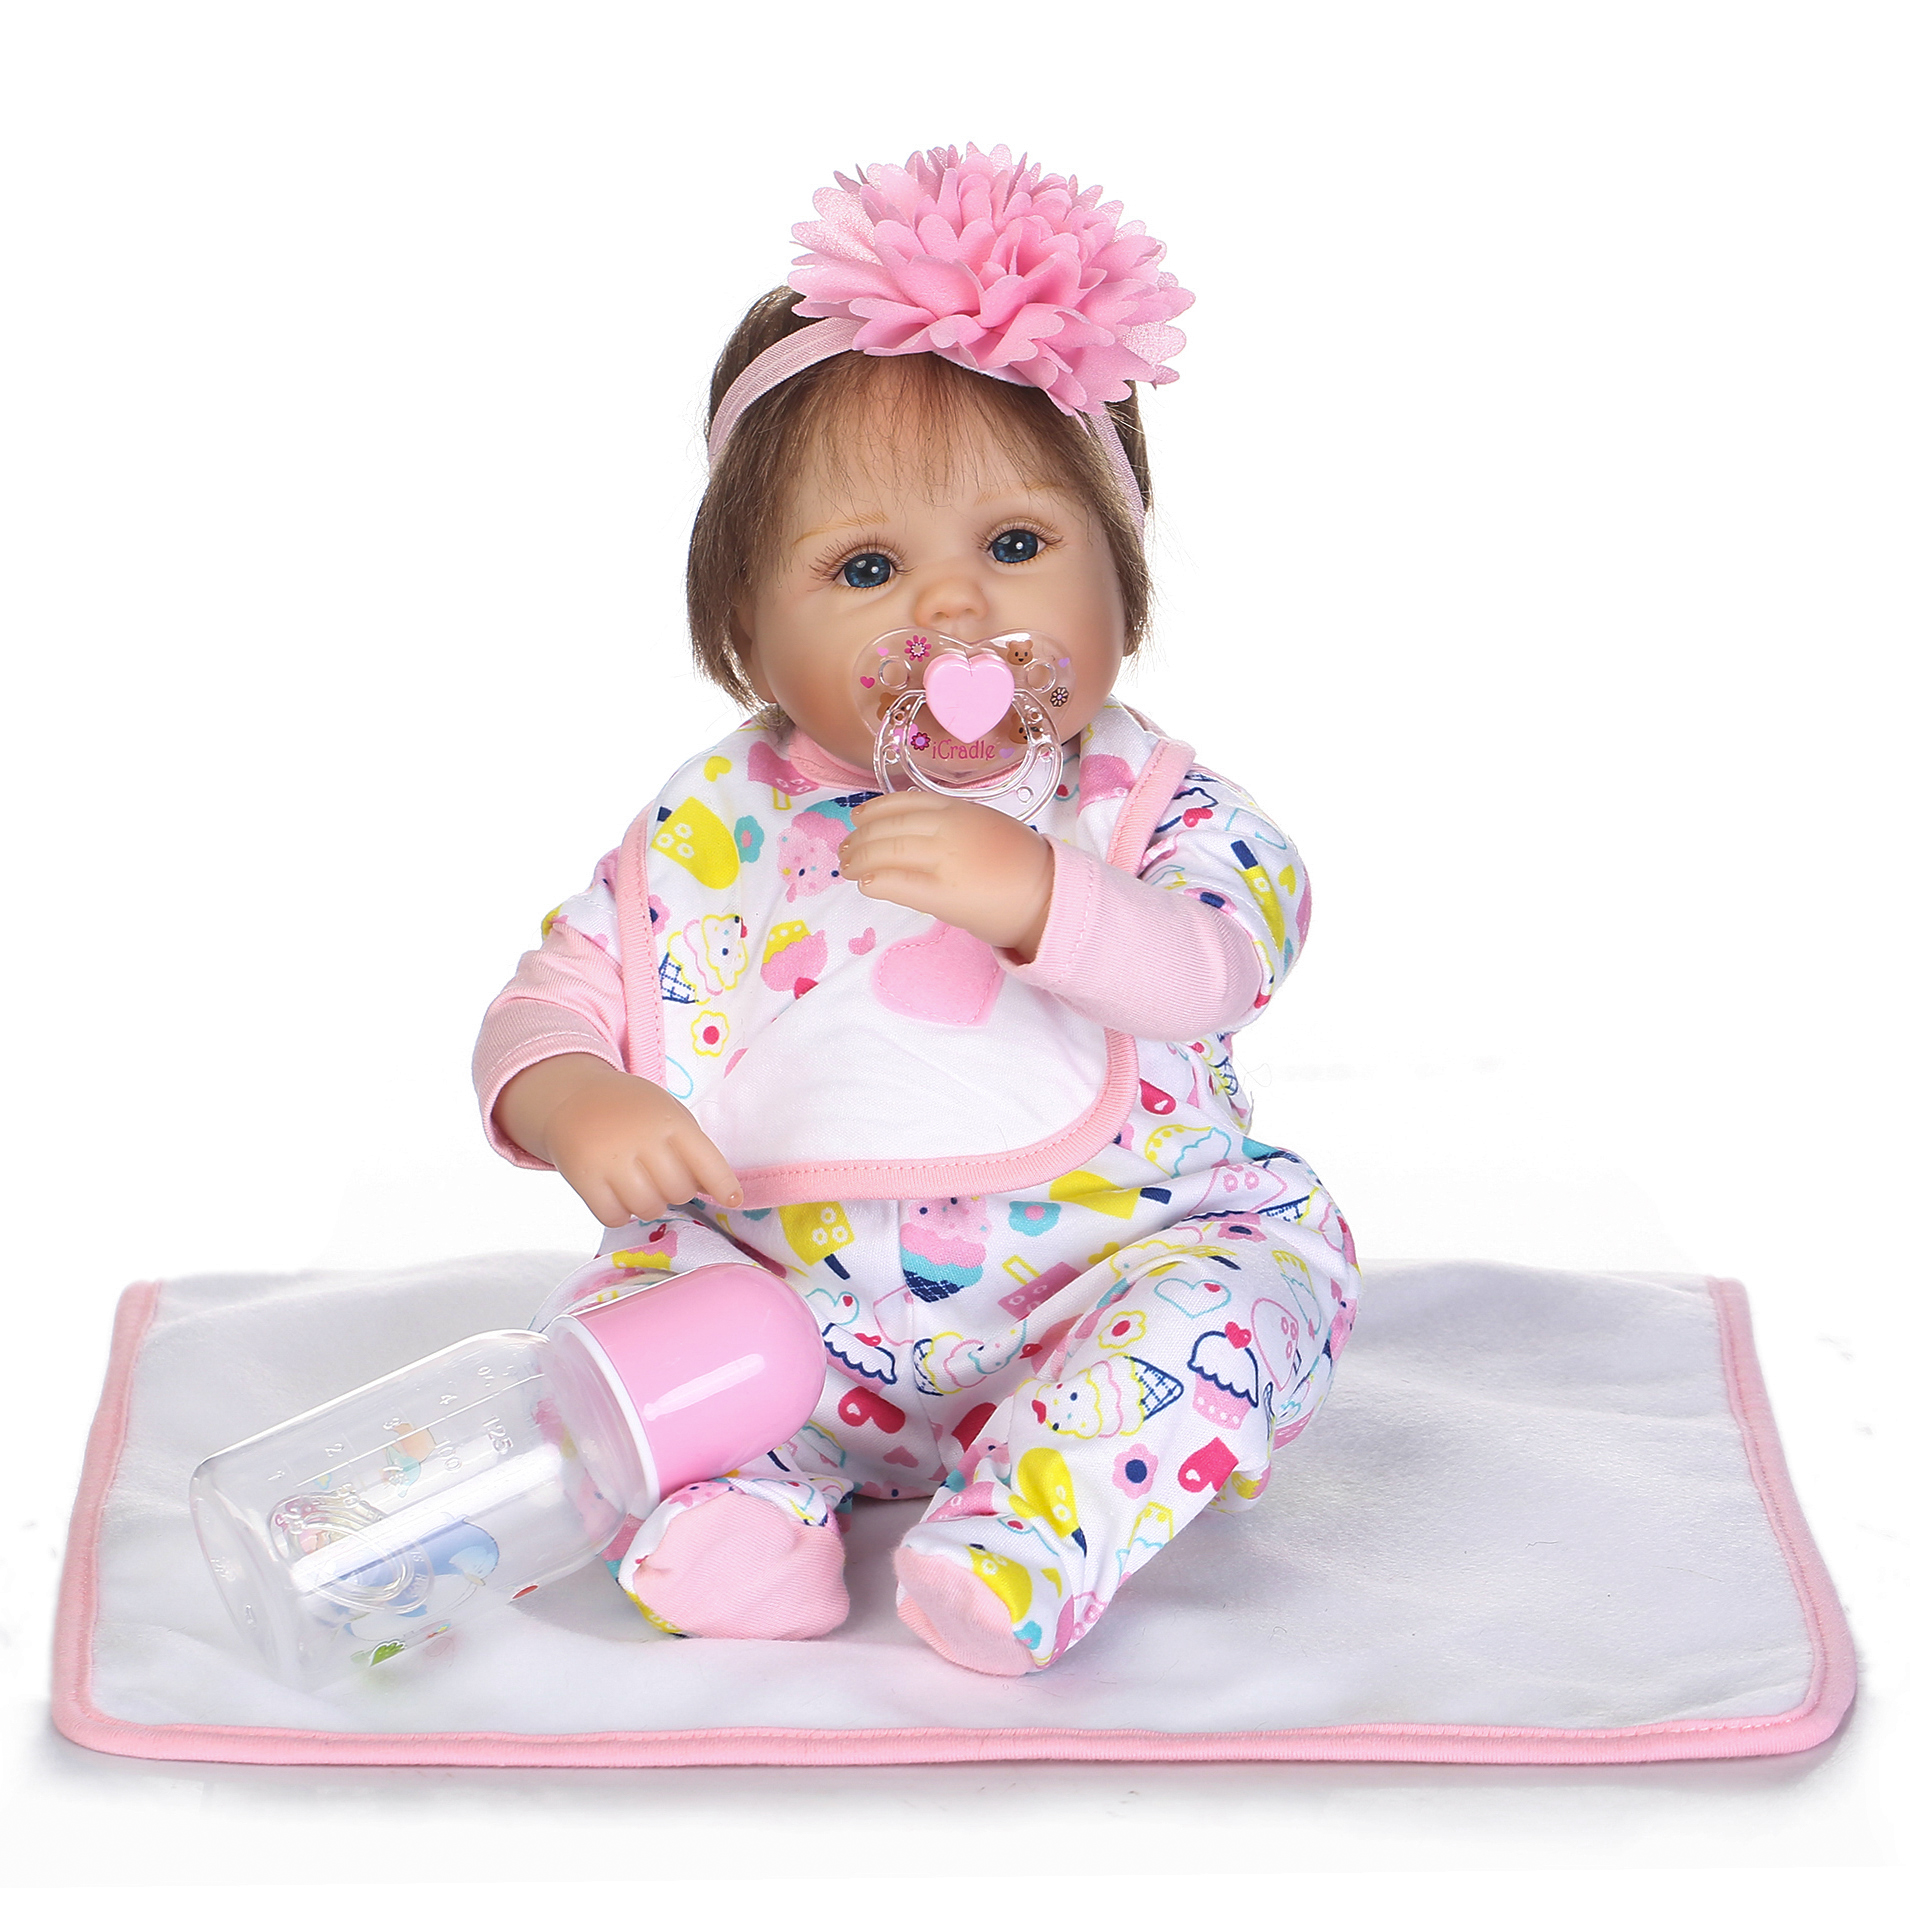 NPK Collection Reborn Baby Doll Soft Silicone 18inch 45cm Magnetic Lovely Lifelike Cute Lovely Baby Ice cream set doll